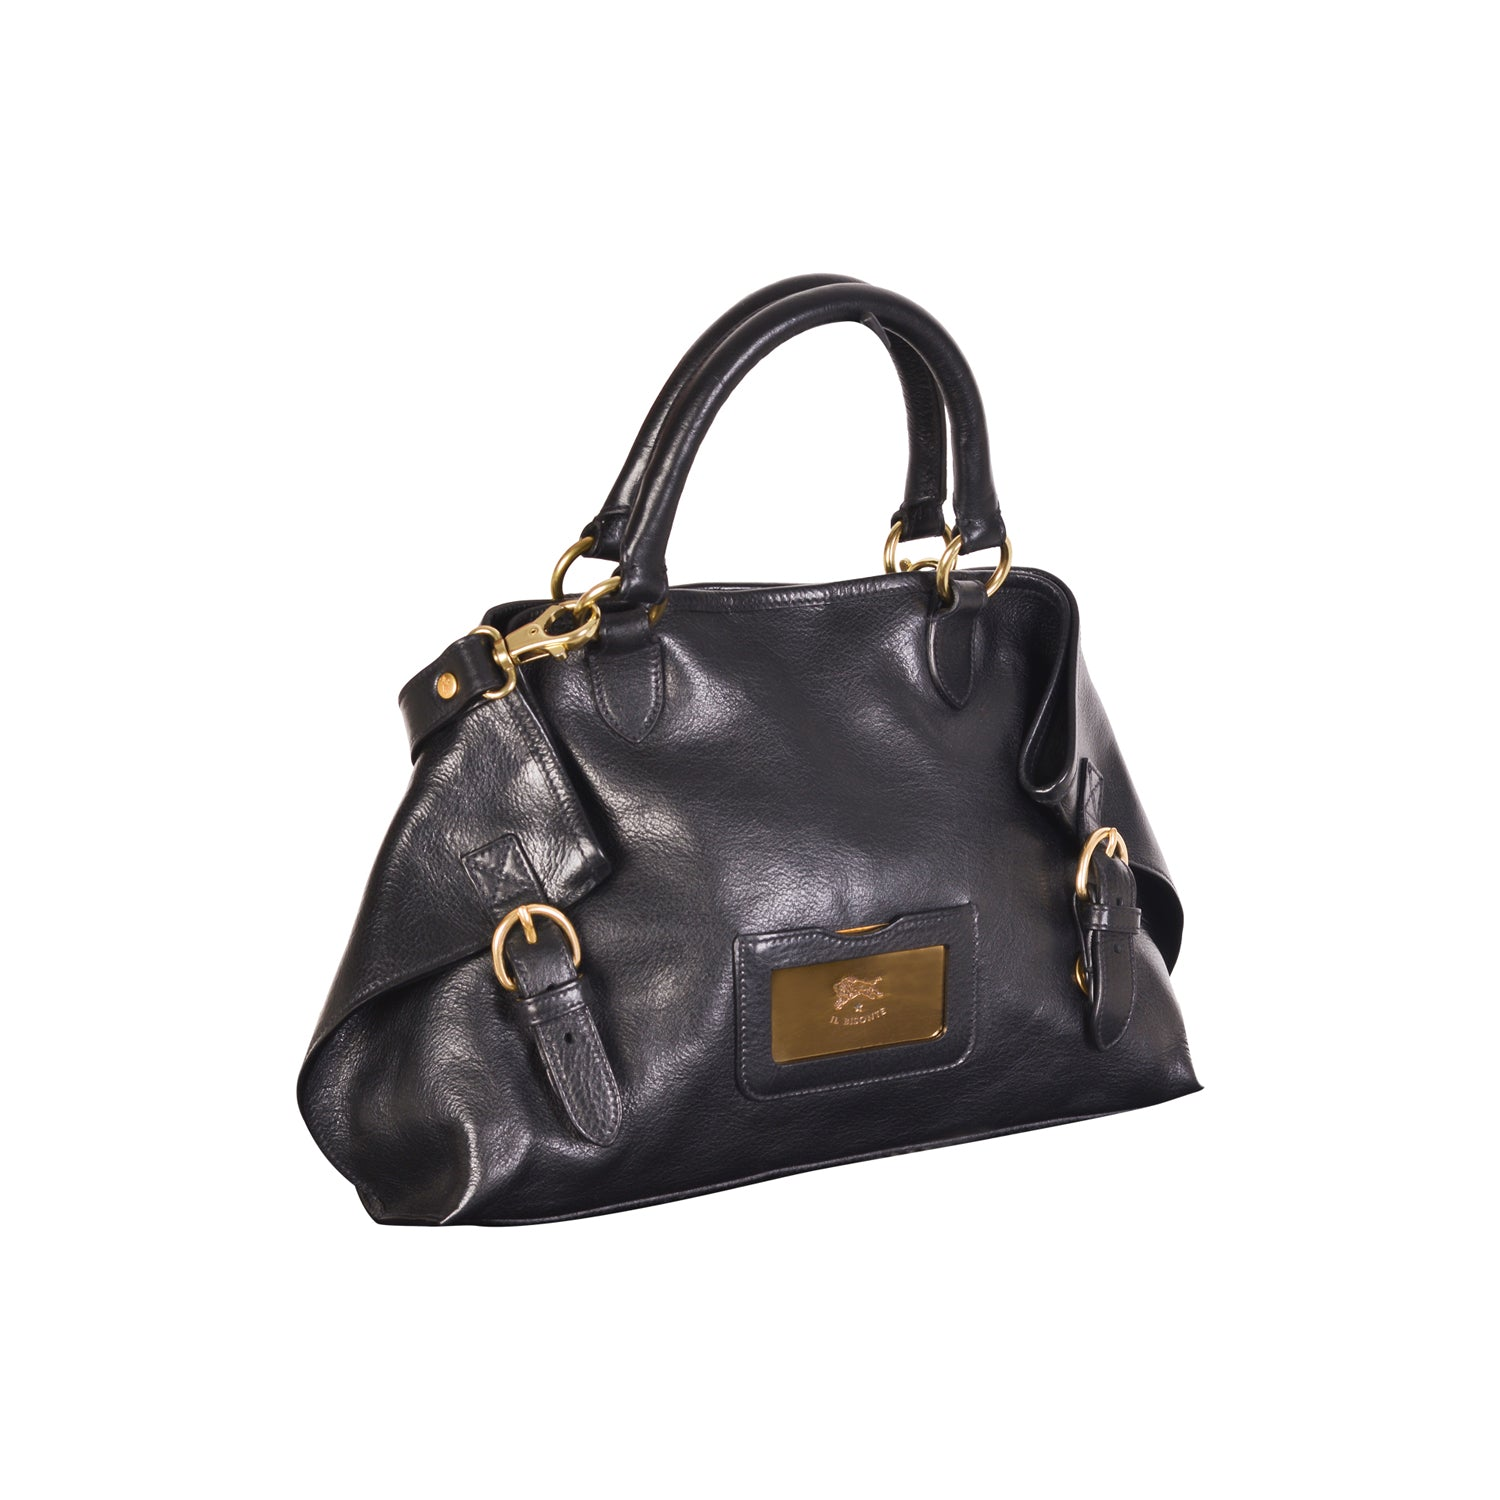 NEW IL BISONTE WOMAN'S SAVAGE COLLECTION HANDBAG IN BLACK LEATHER